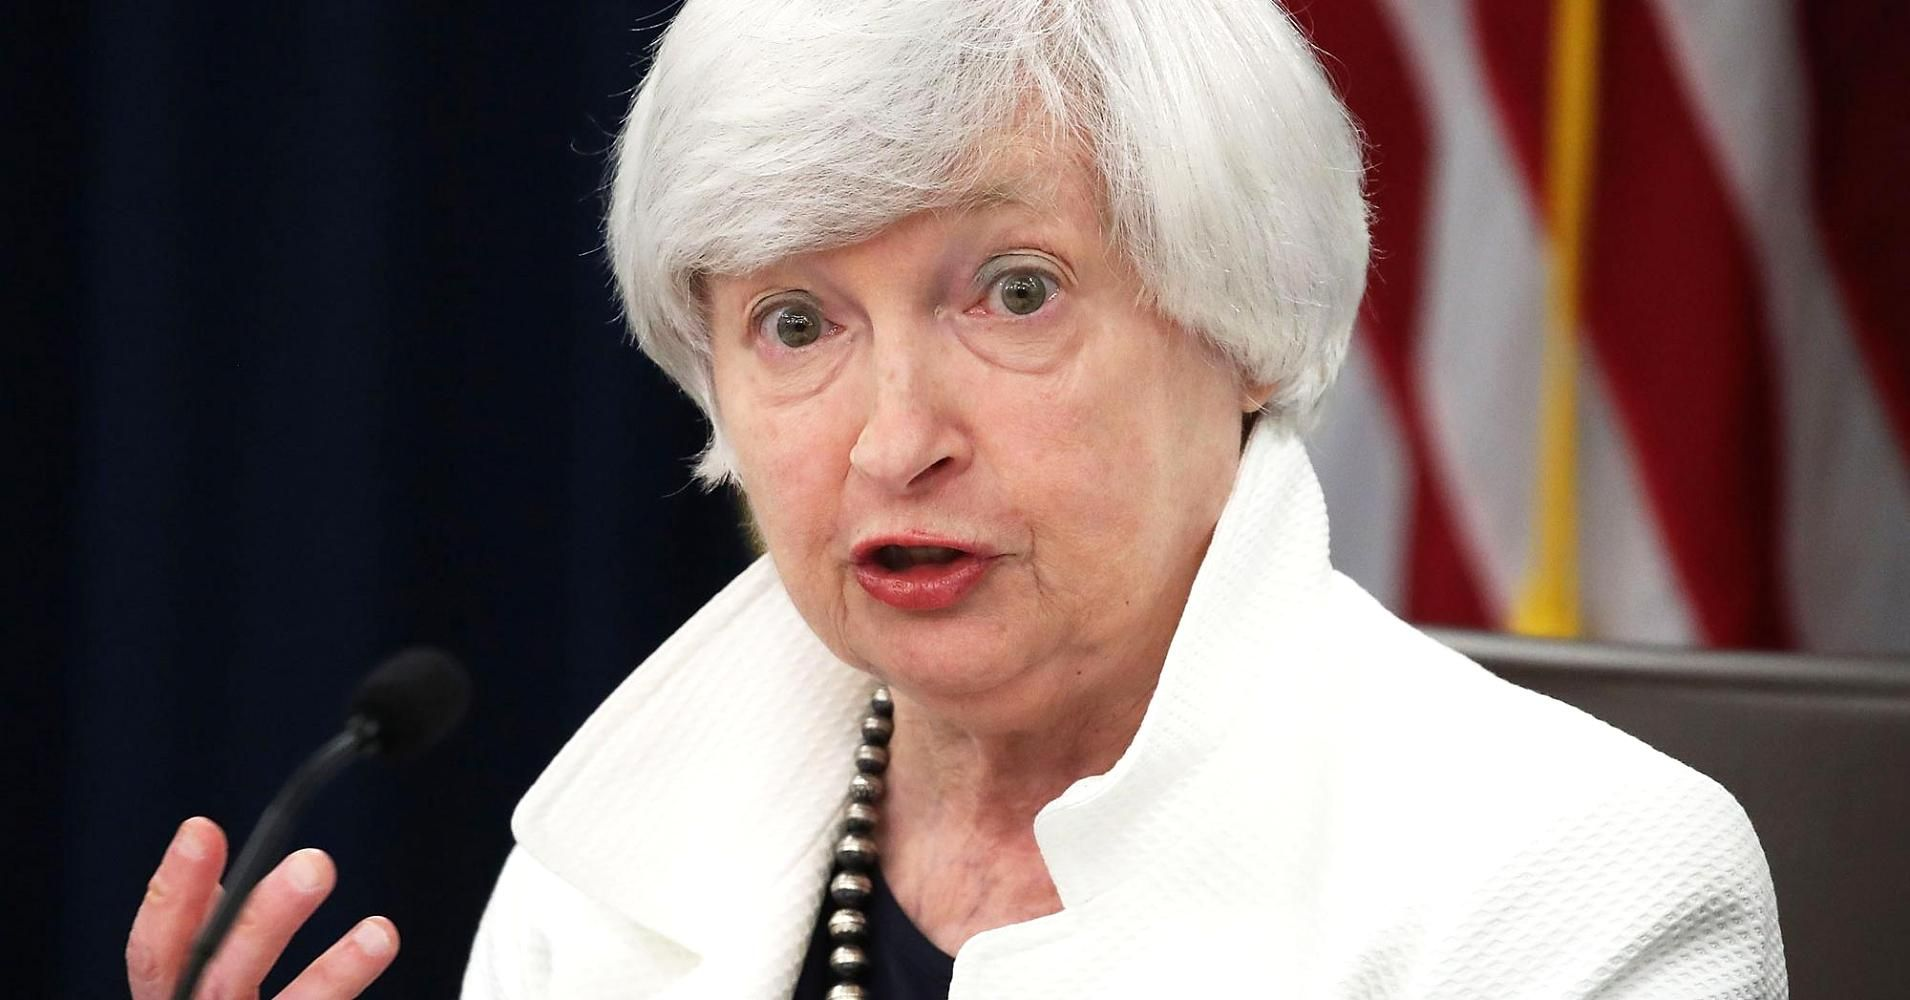 Watch Yellen Speaks At Nyu In A Single Of Final Appearances As Fed Chair Boss Lady Style Janet Yellen Magic Wand